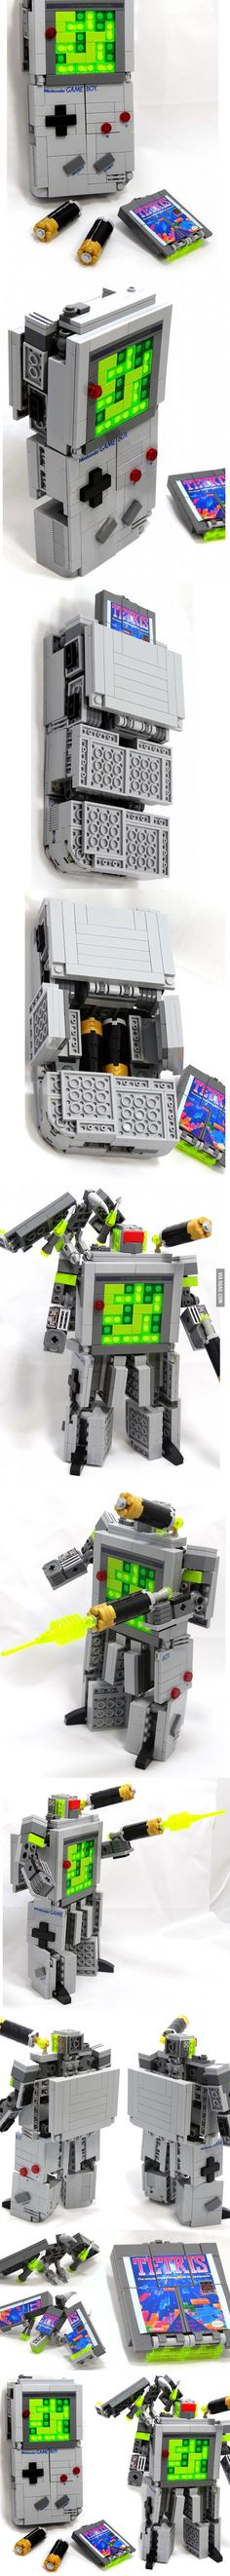 If the Decepticon Soundwave transformed from a Nintendo Gameboy AND was made out of Lego bricks, this is totally what you would see. So cool to see games, Legos and transformers merged this way! Lego Design, Game Boy, Photo Lego, Lego Transformers, Mega Pokemon, Niklas, Amazing Lego Creations, Lego Craft, Lego Mecha